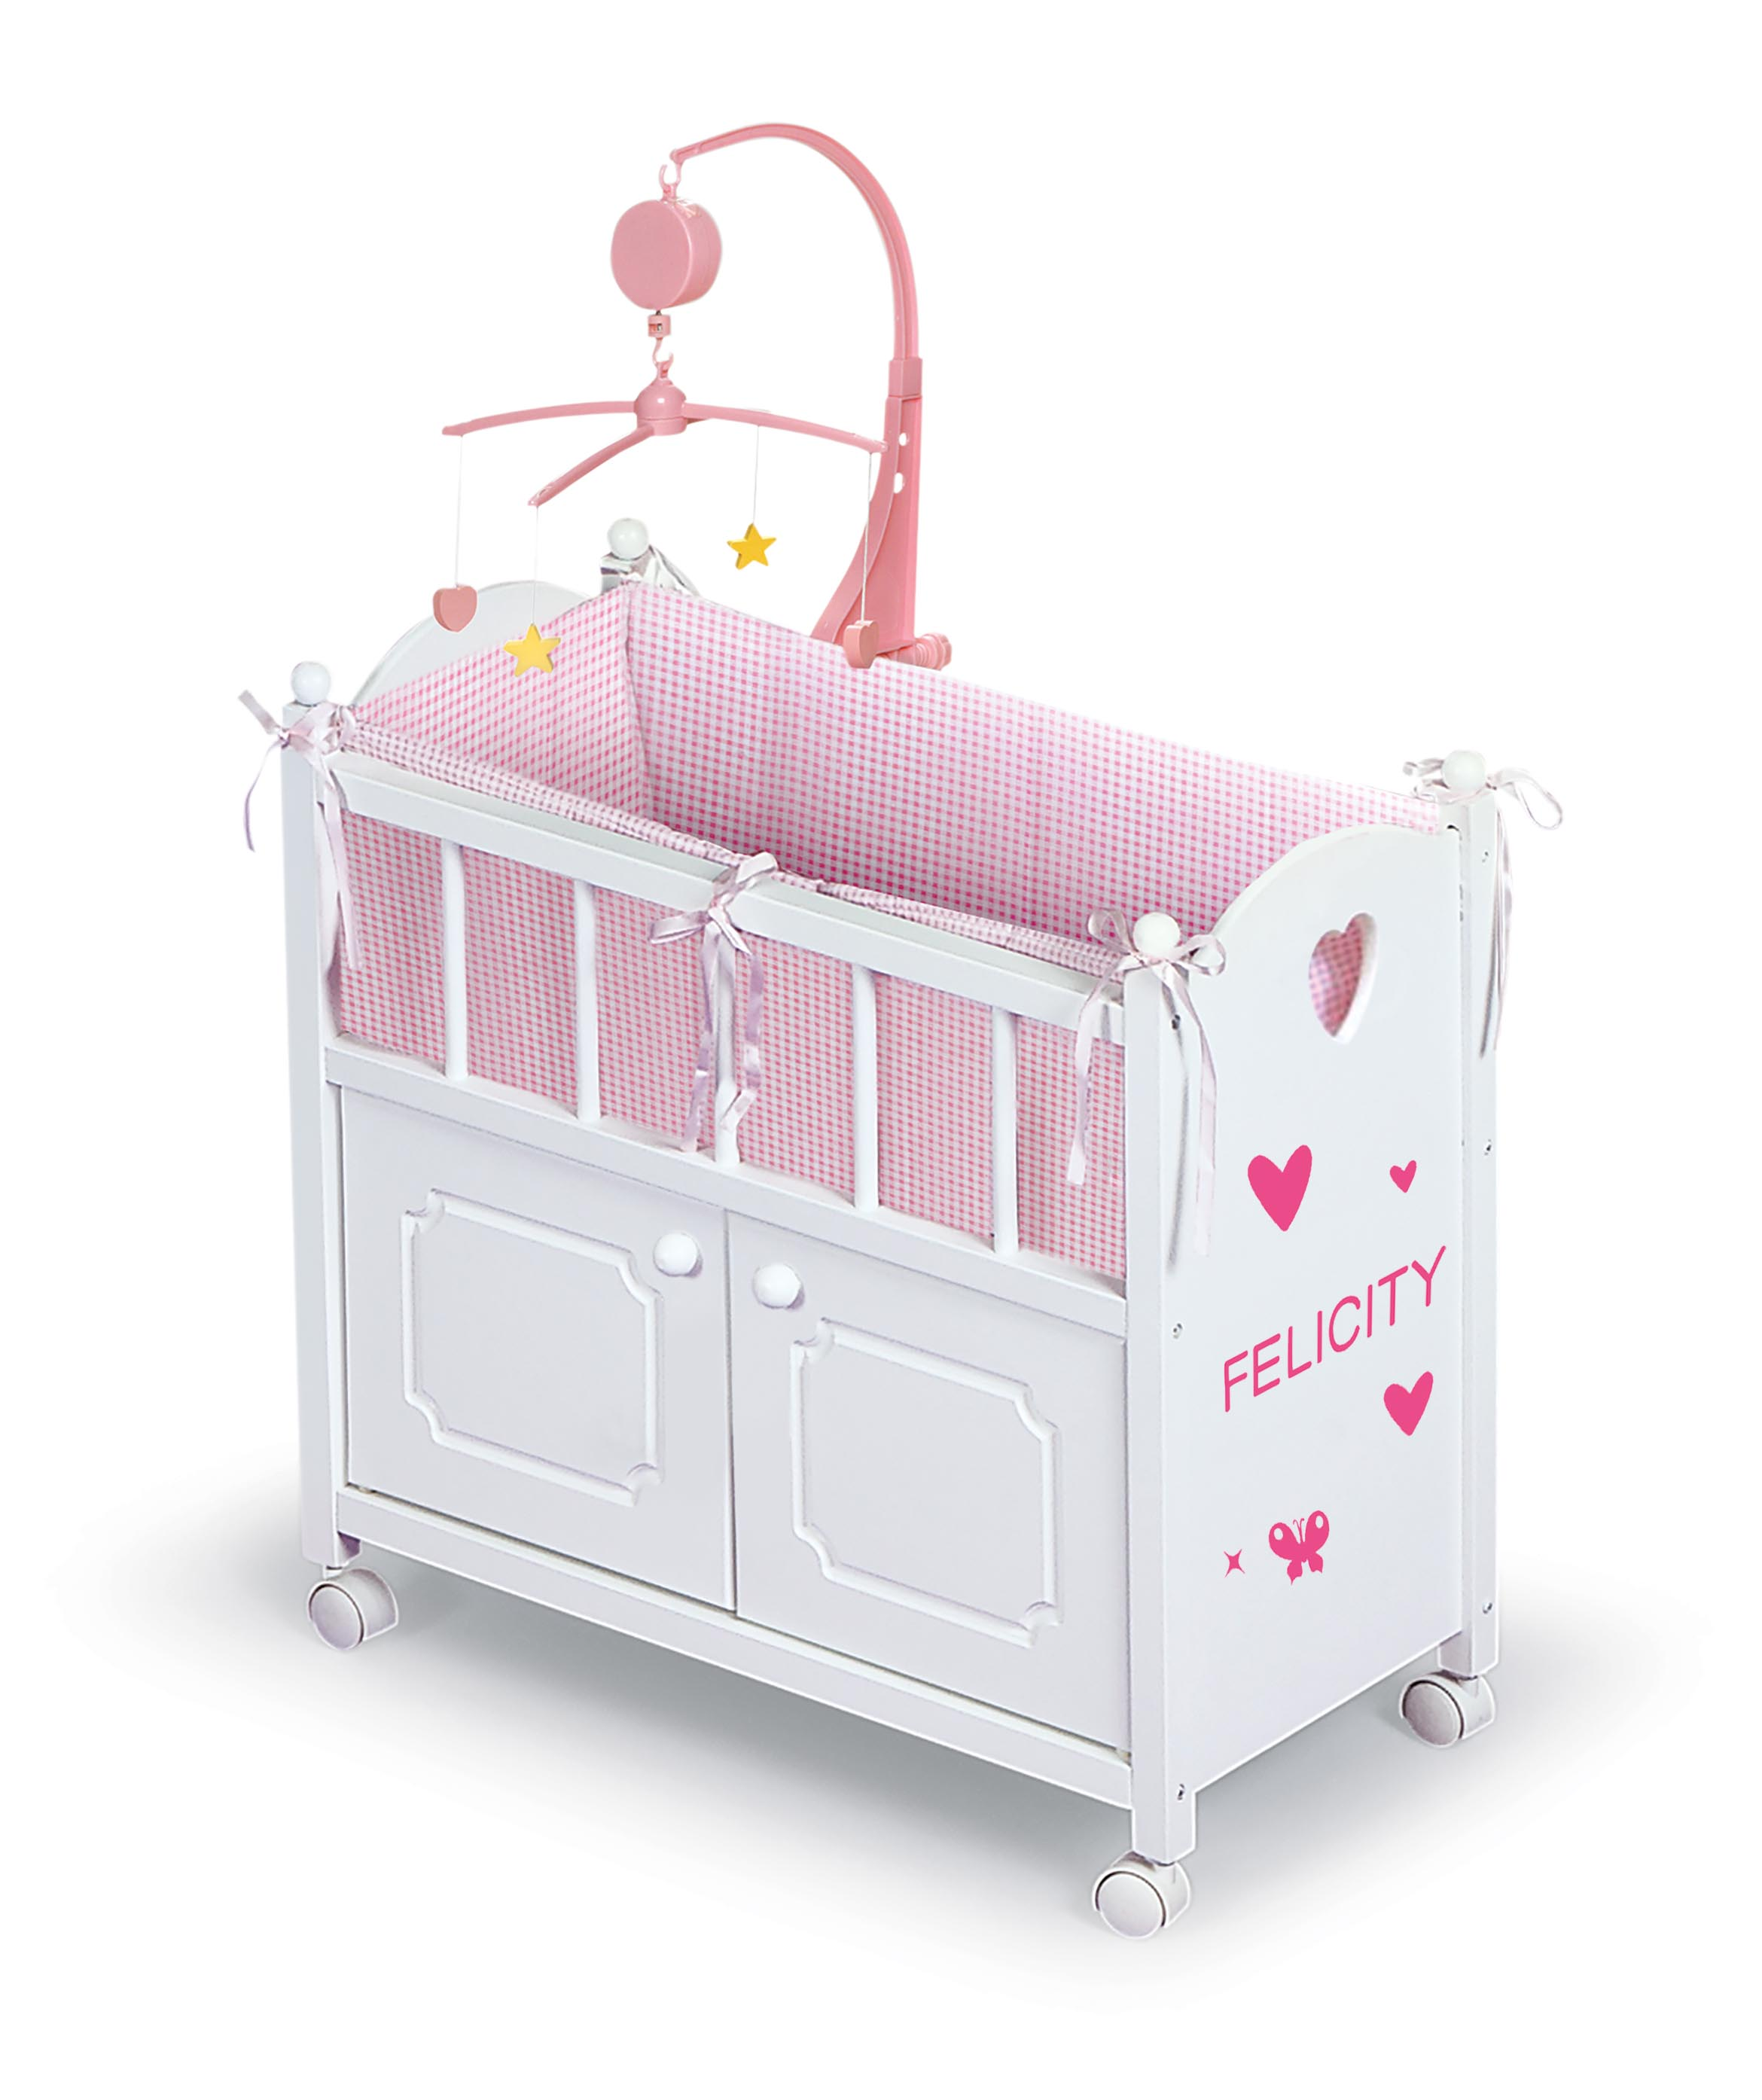 Badger Basket Cabinet Doll Crib With Gingham Bedding And Free Personalization Kit White Pink Fits American Girl My Life As Most 18 Dolls Walmart Com Walmart Com